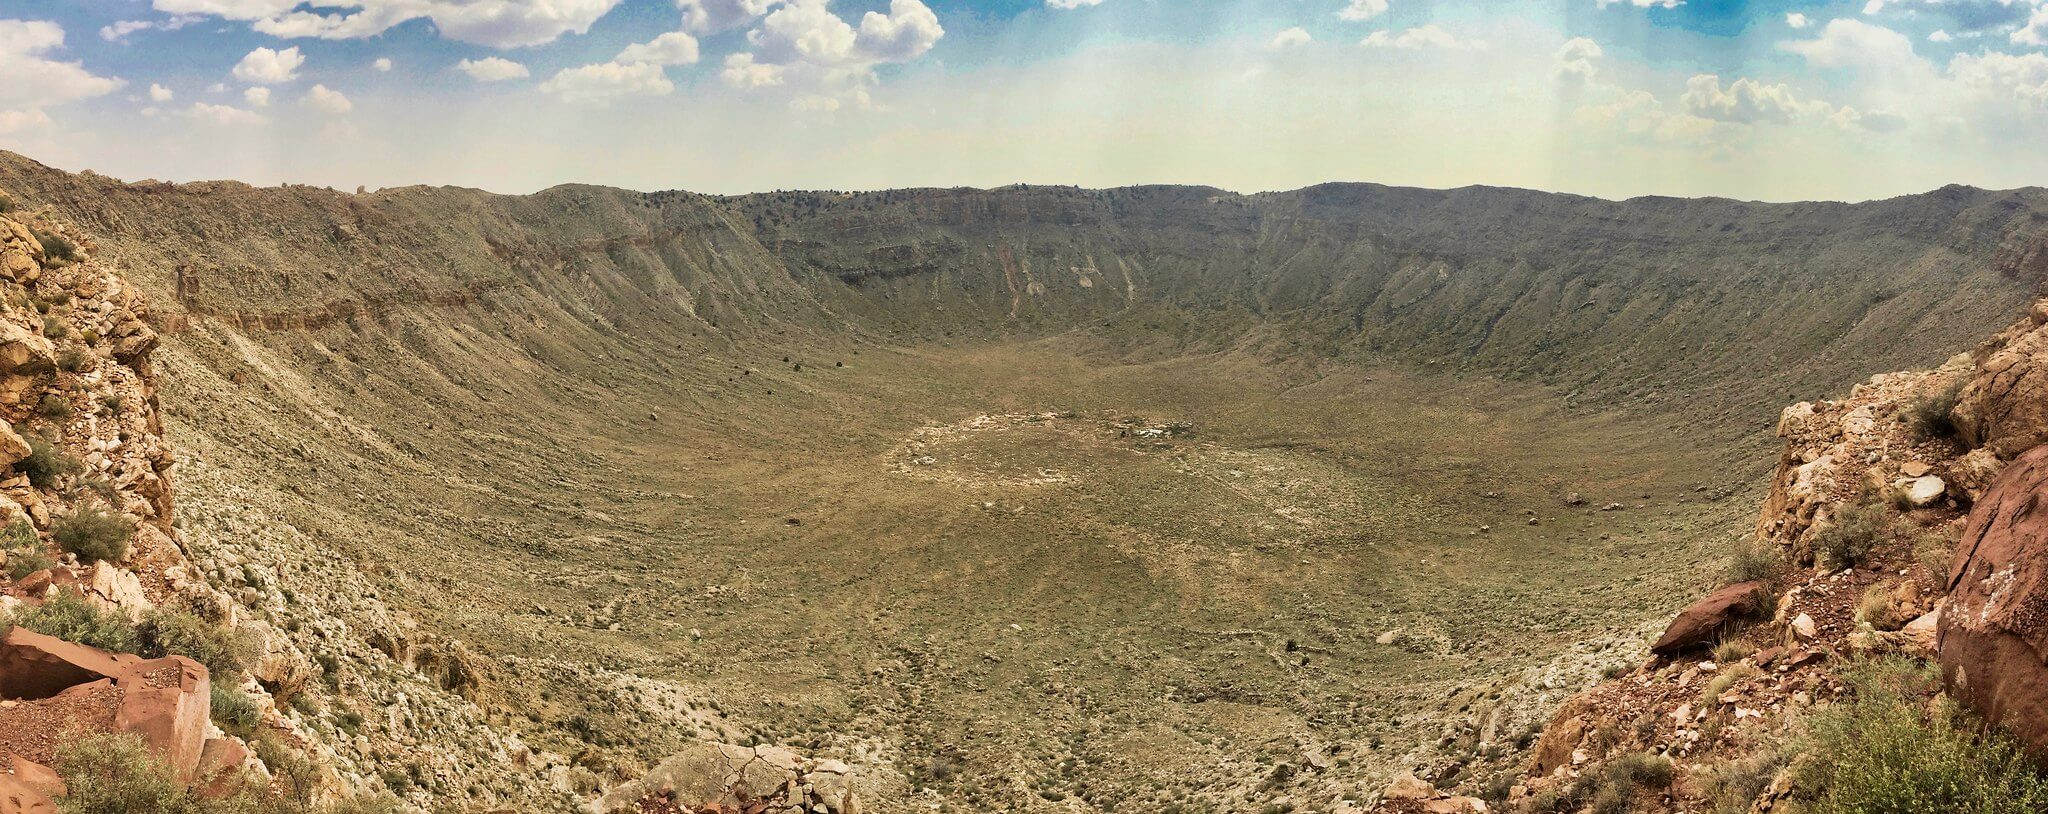 Barringer Crater, also known as Meteor Crater, near Winslow, Arizona.